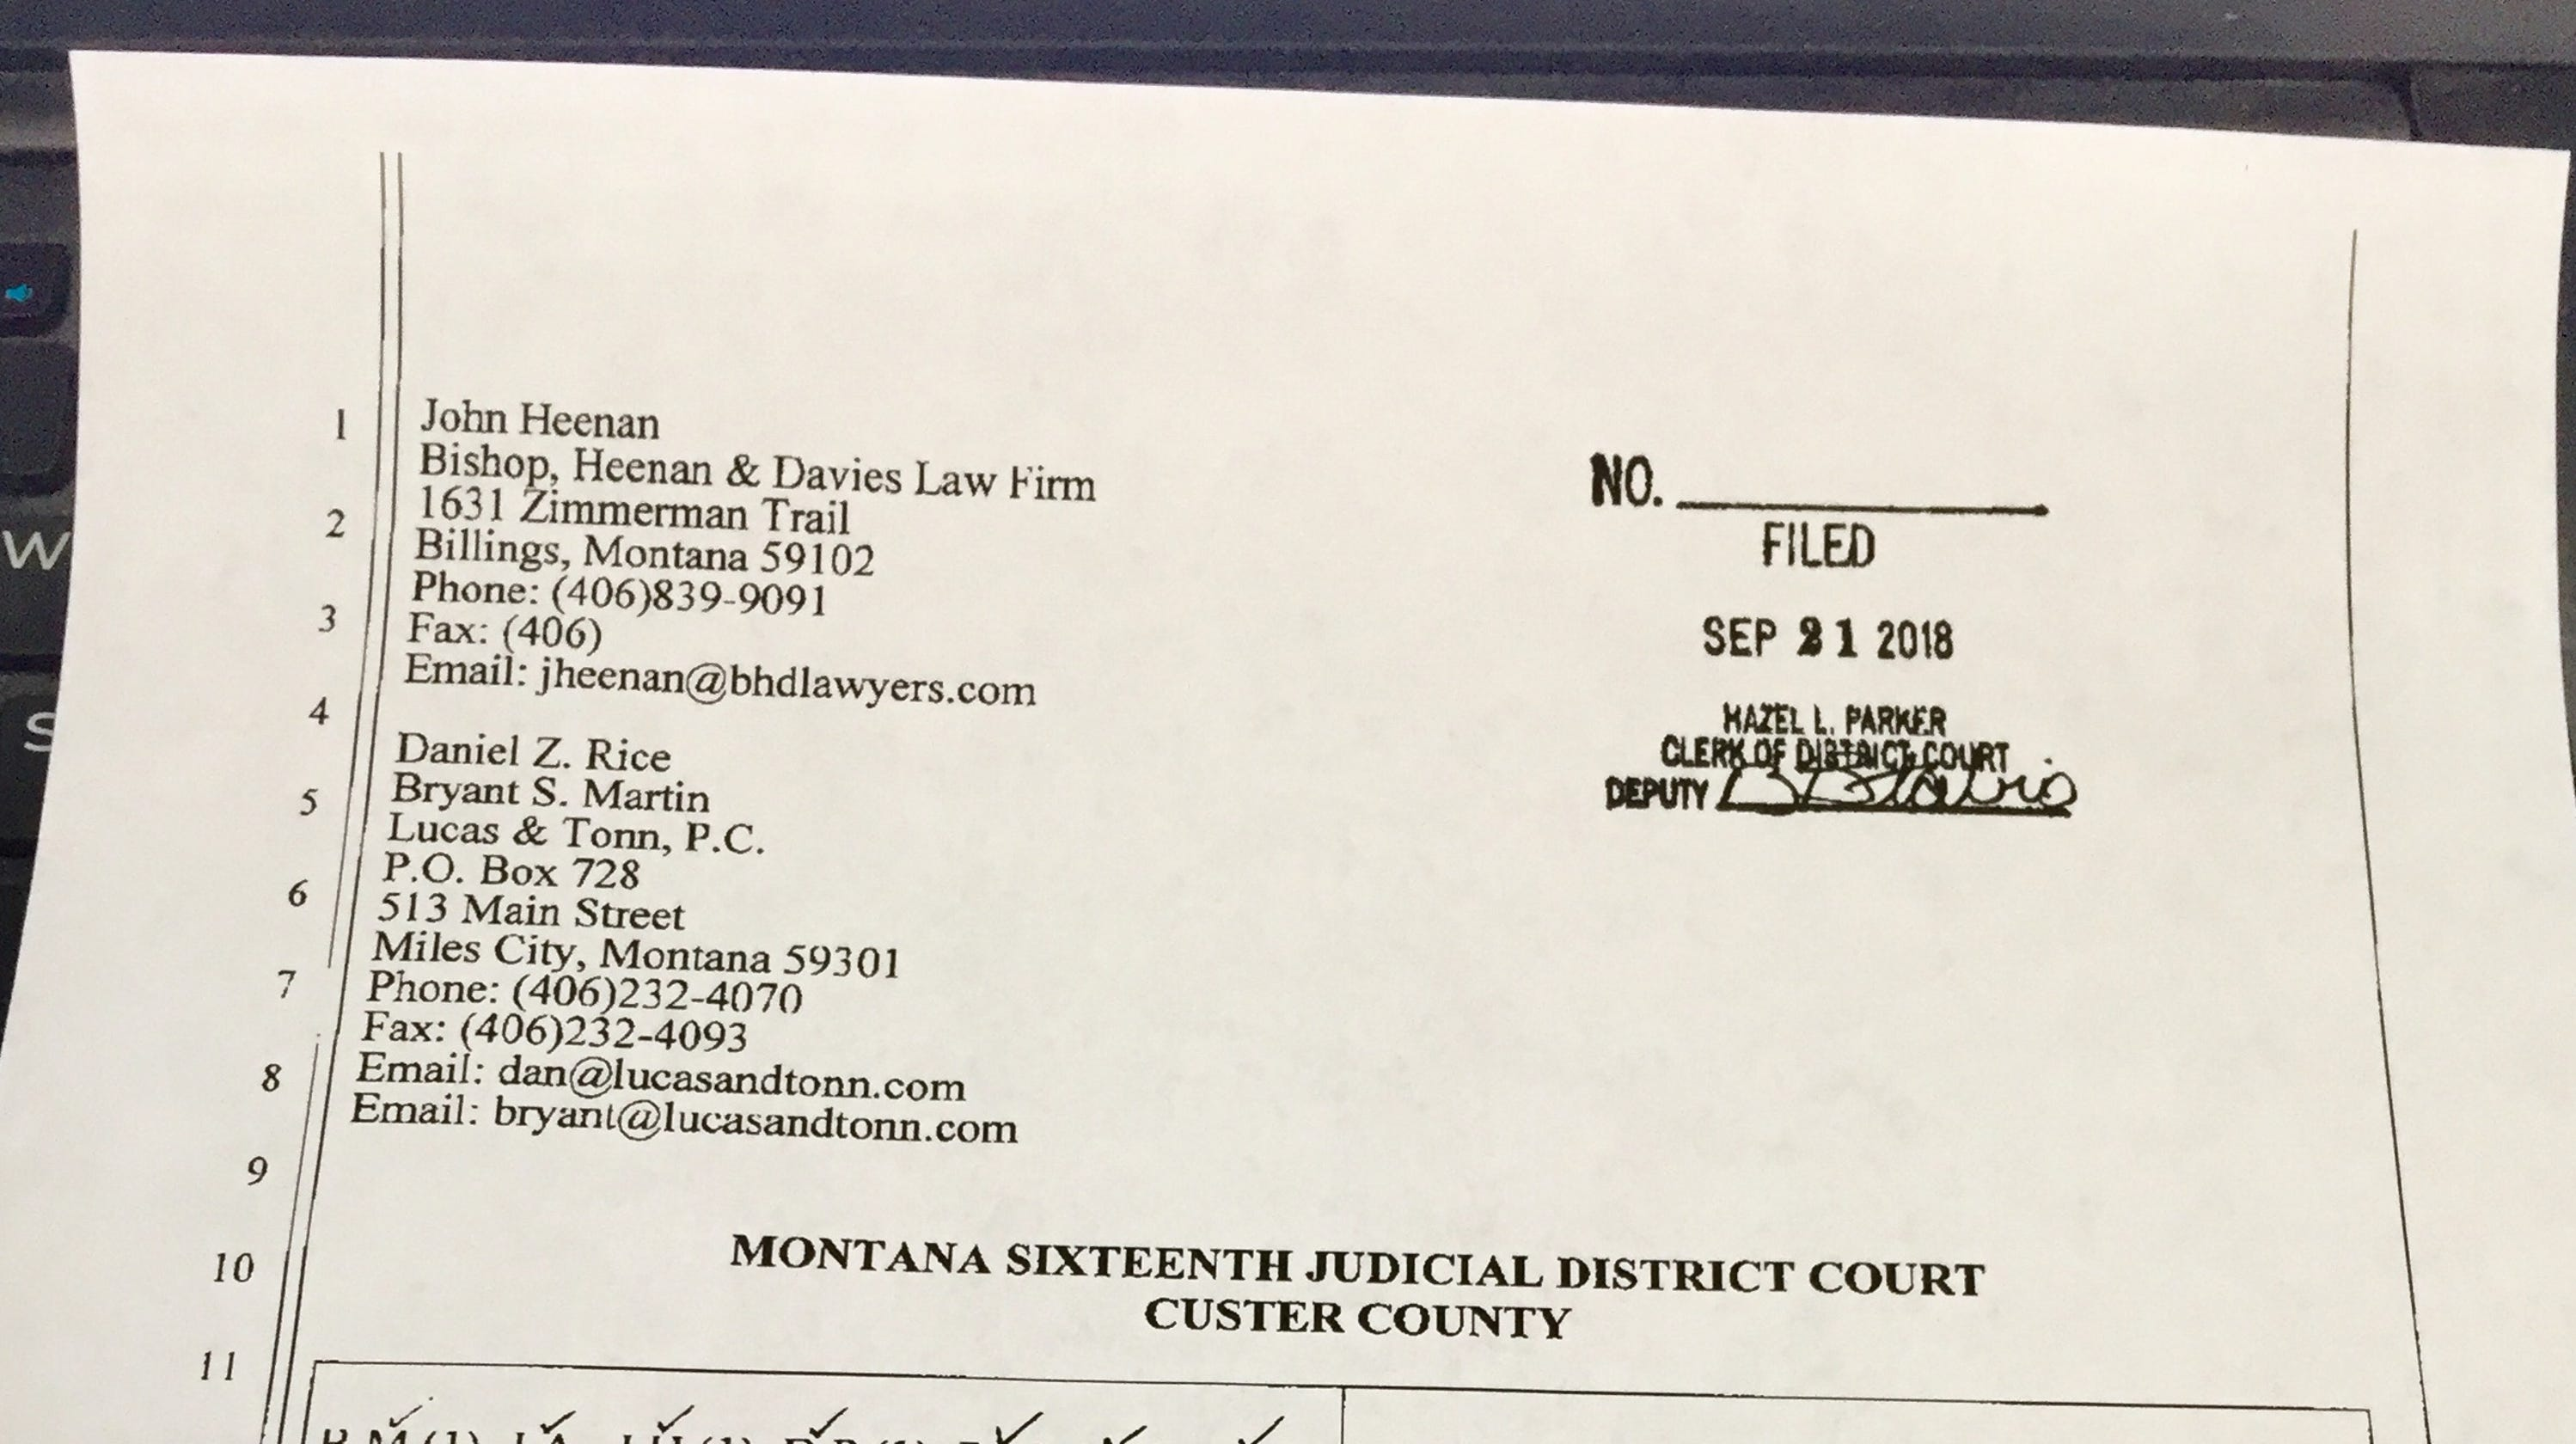 Group Says Miles City Montana Man Never Certified As Athletic Trainer